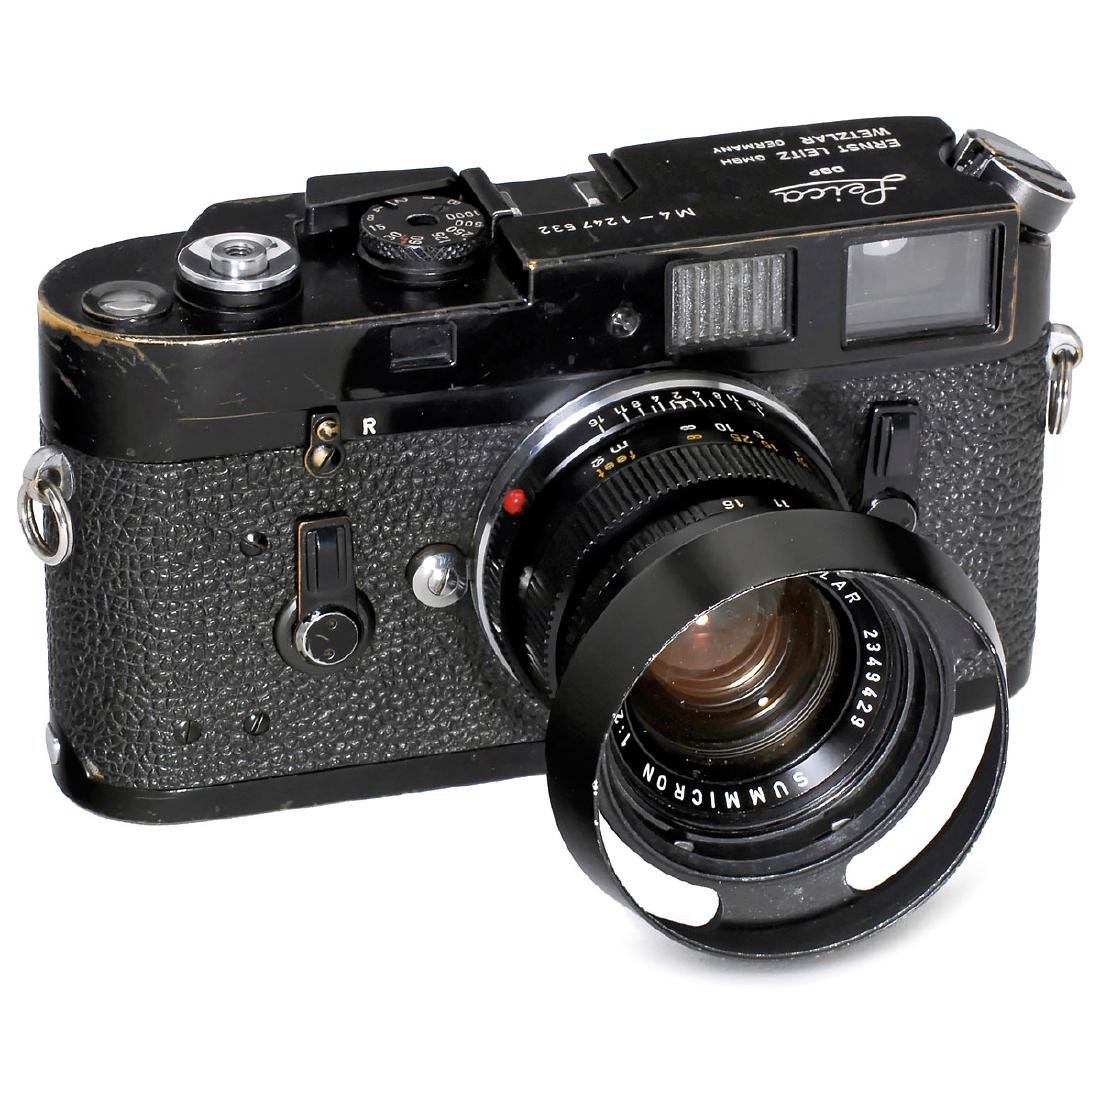 Leica M4 (Black Paint) with Summicron 2/50, 1969